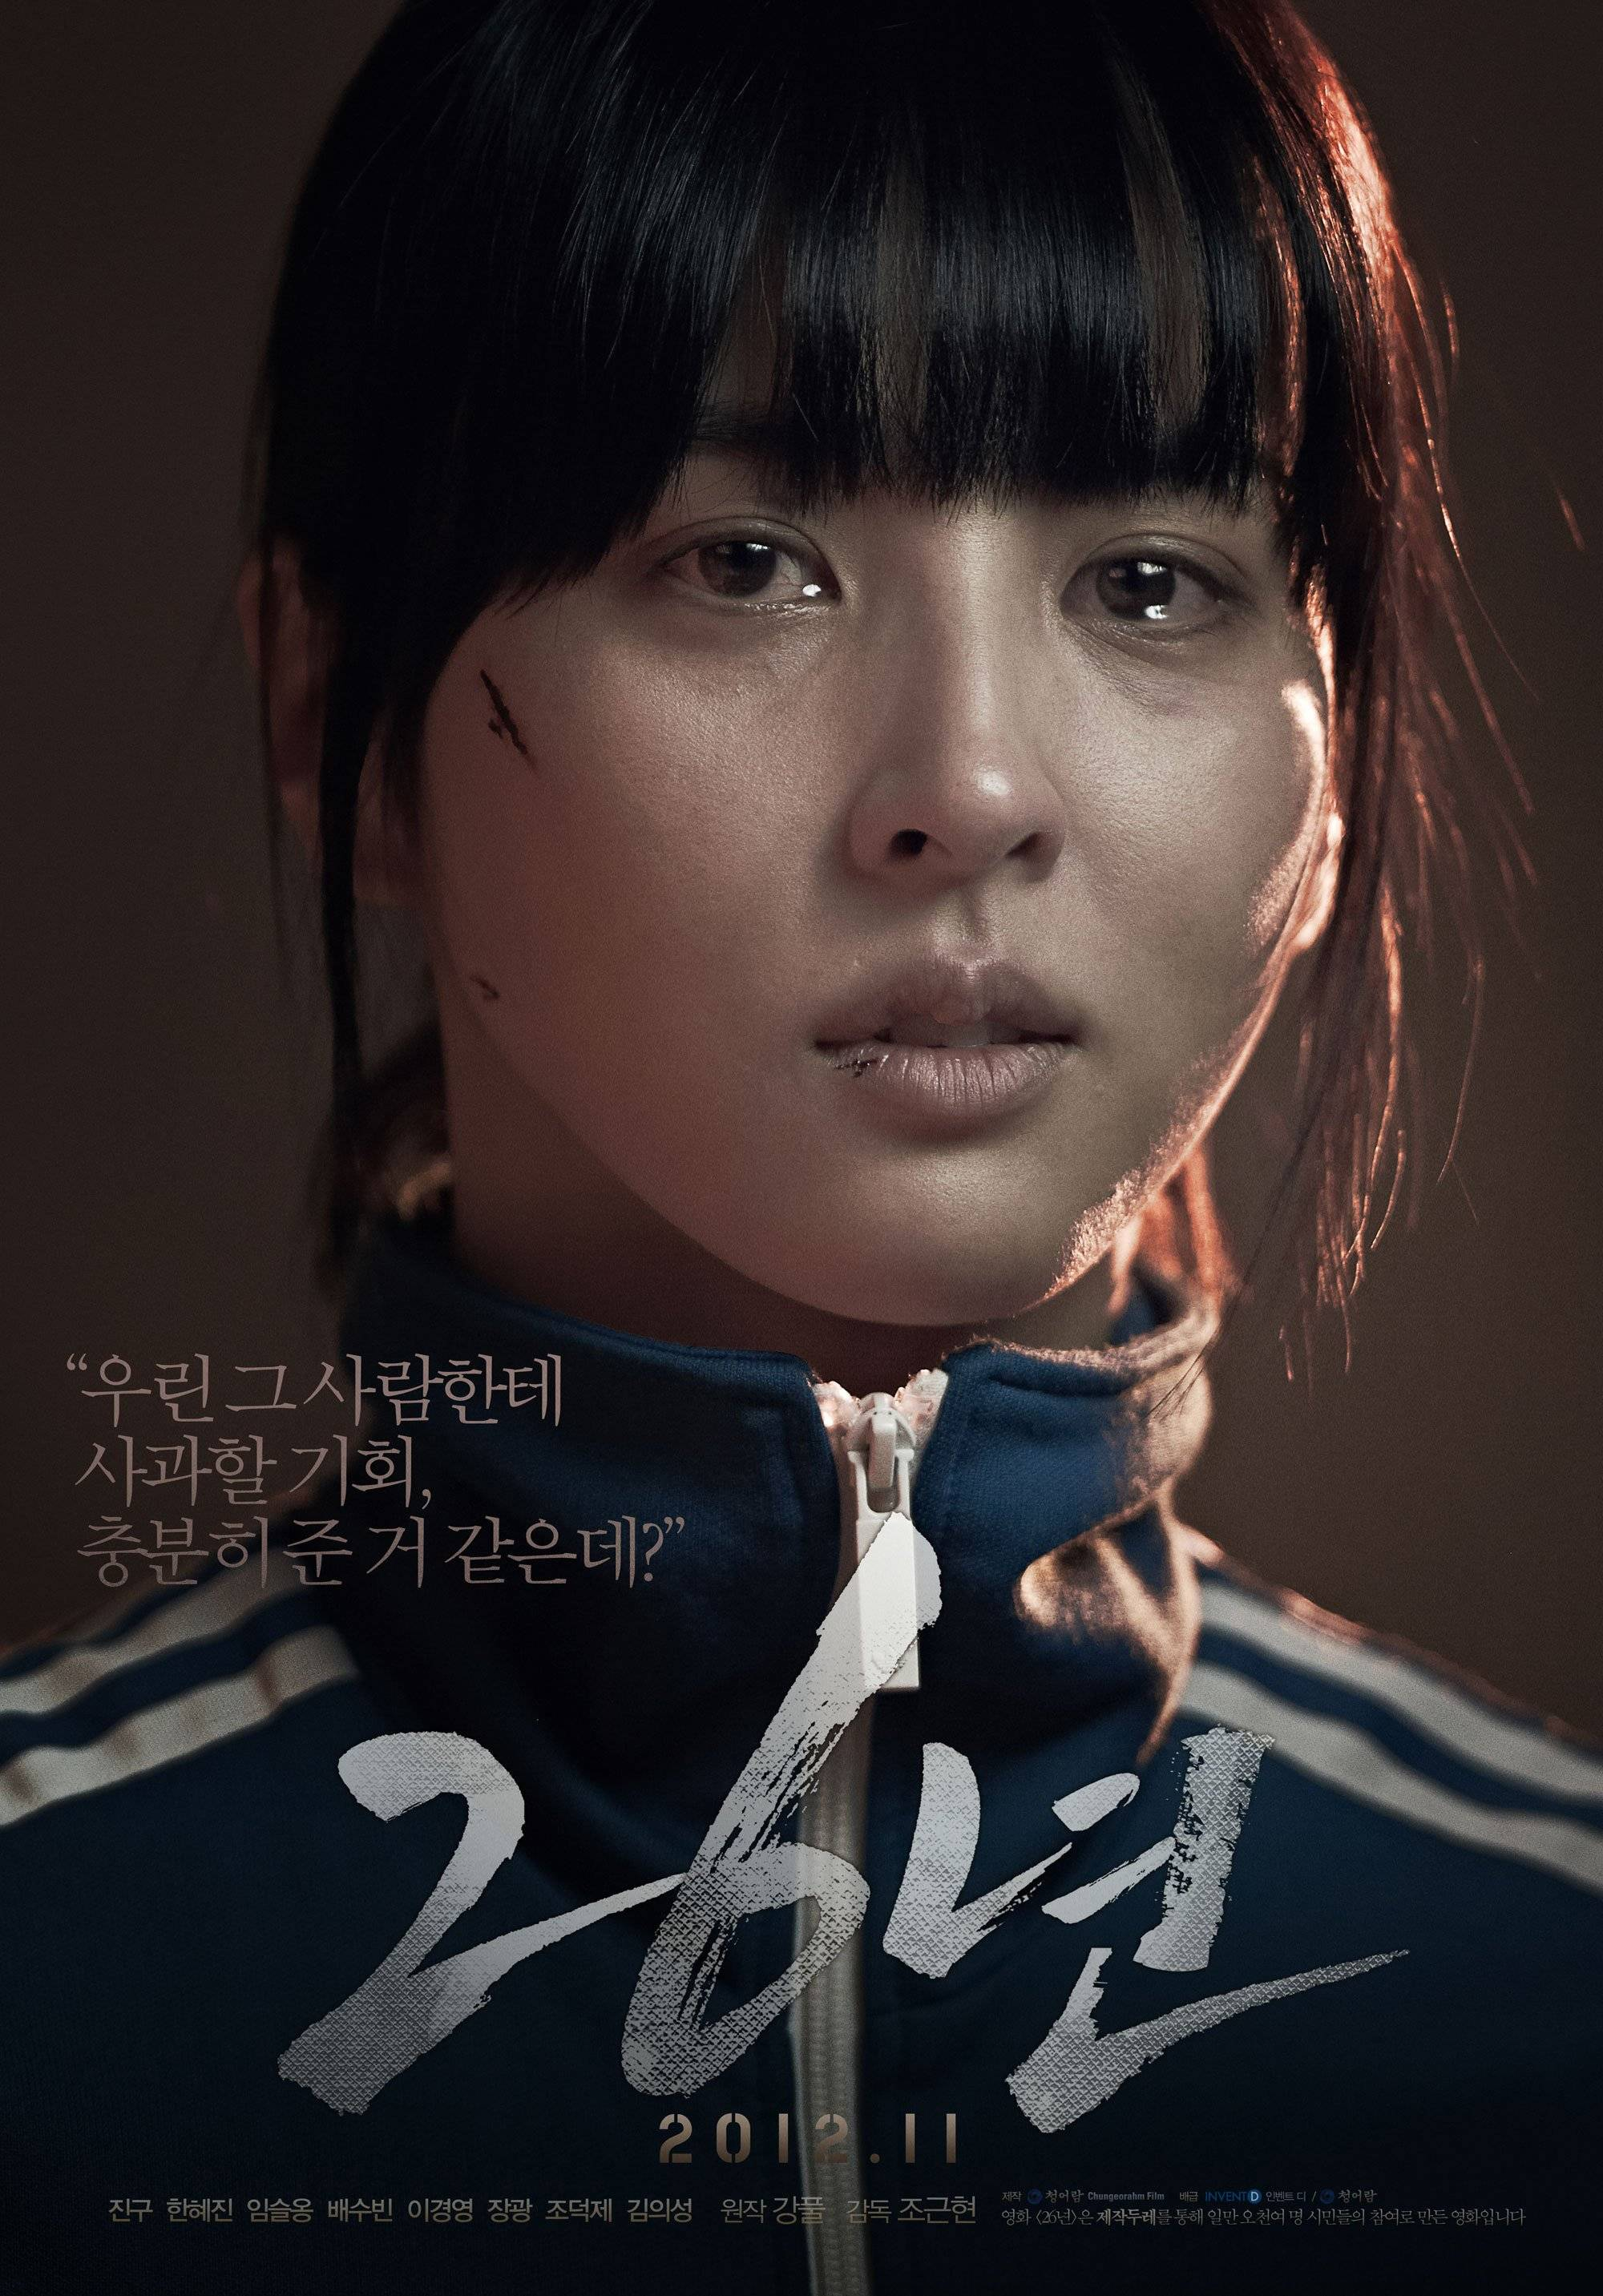 Added new posters for the upcoming Korean movie